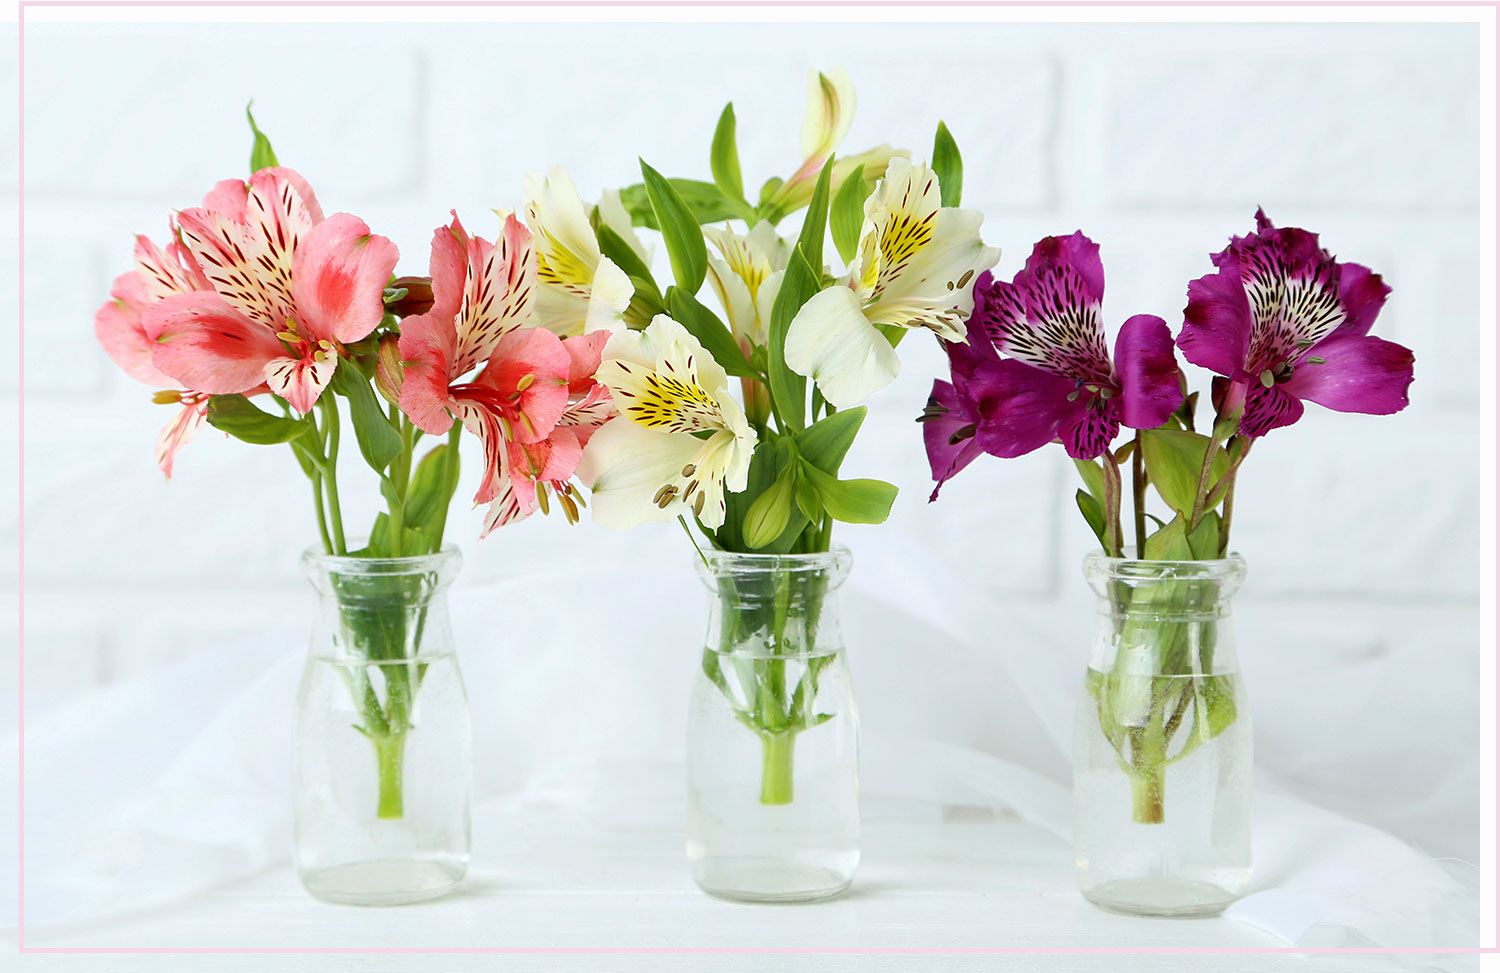 photo of three bouquets of flowers